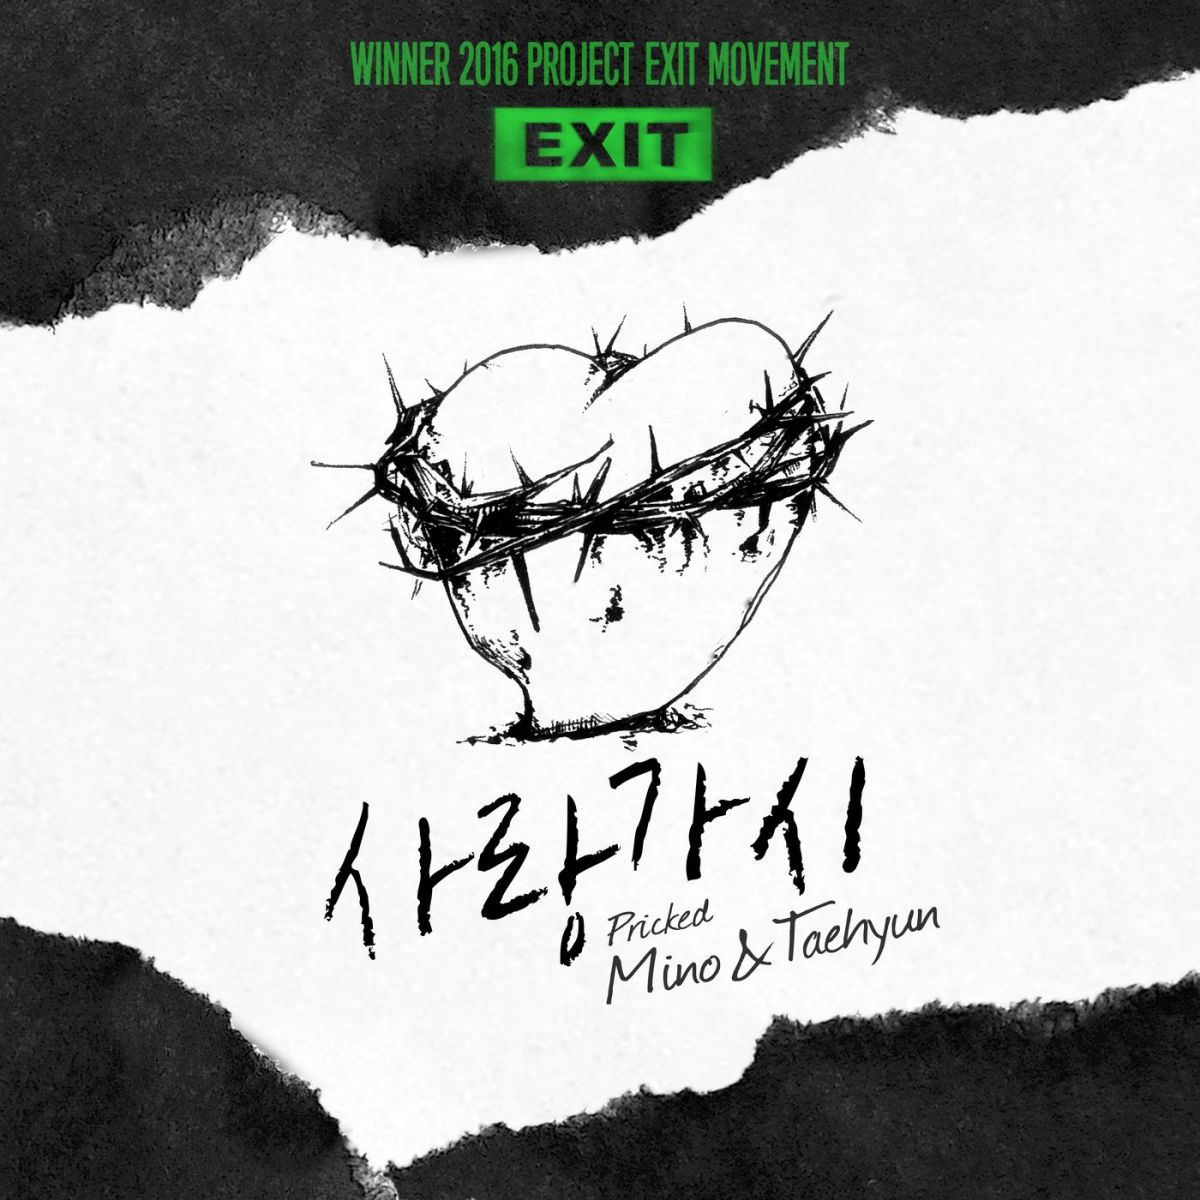 WINNER (민호&태현) – ENTRY SINGLE – 사랑가시 (Pricked) – Hangul & Romanization Lyrics